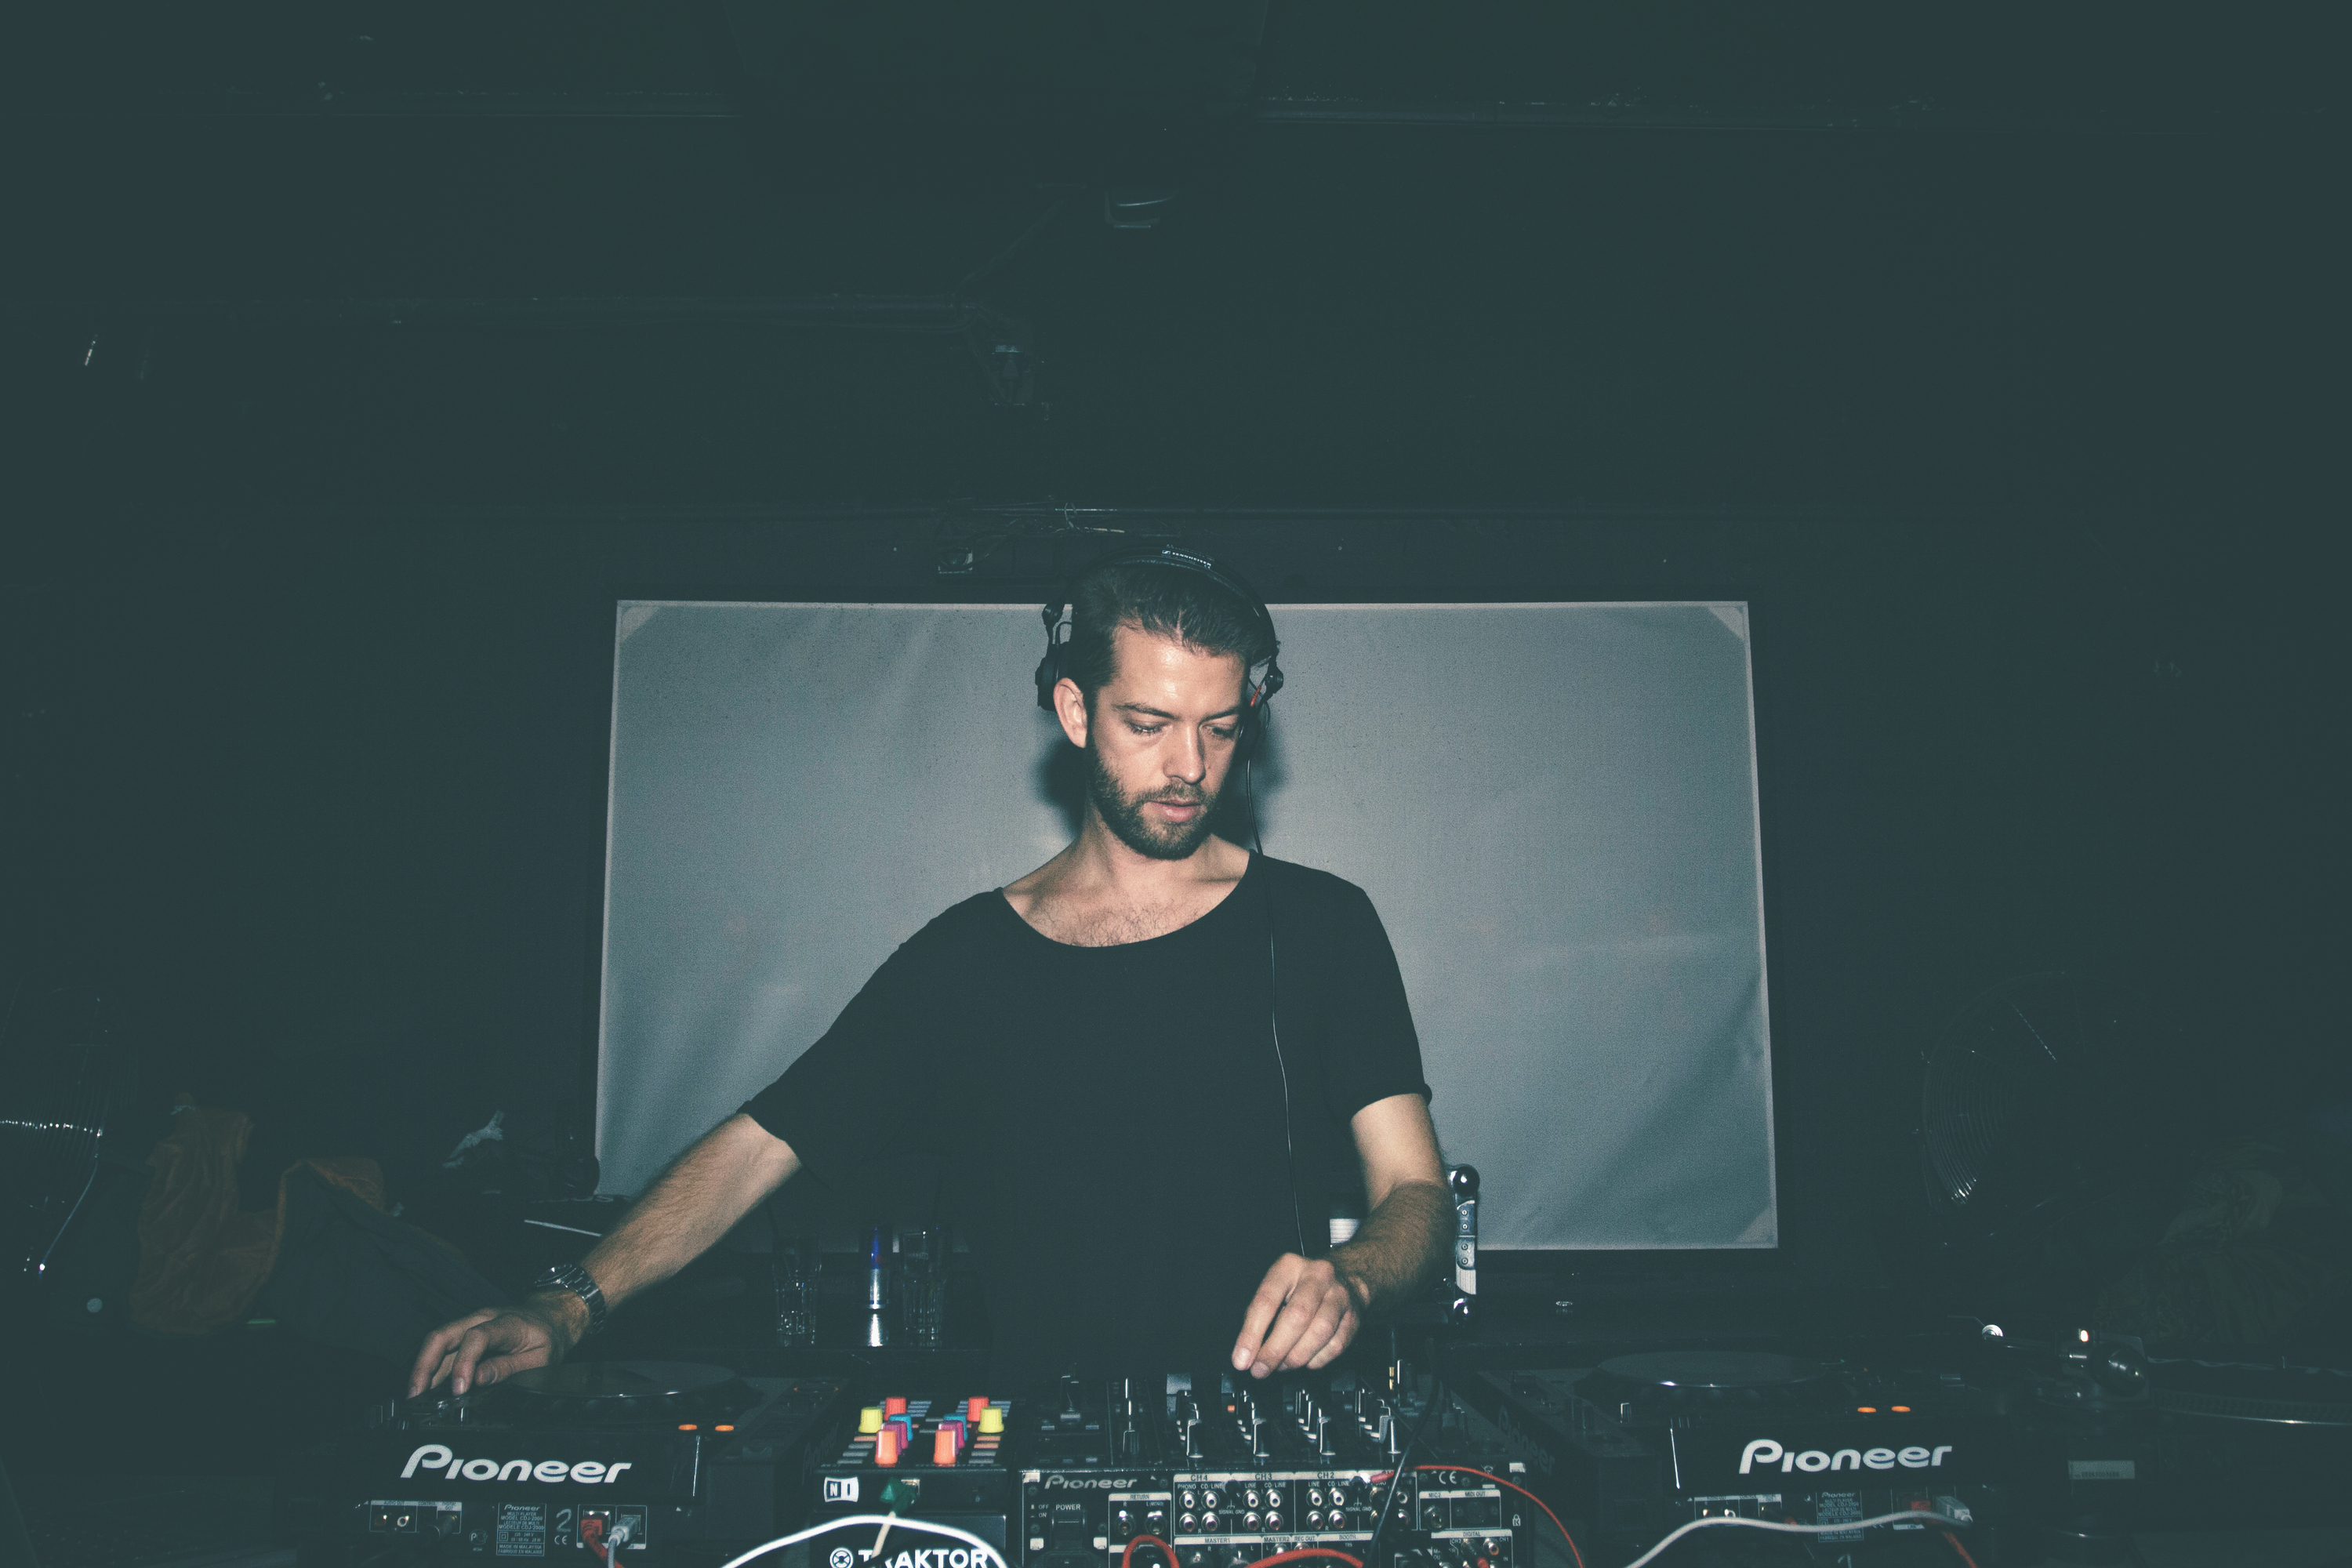 Connected presents Onno